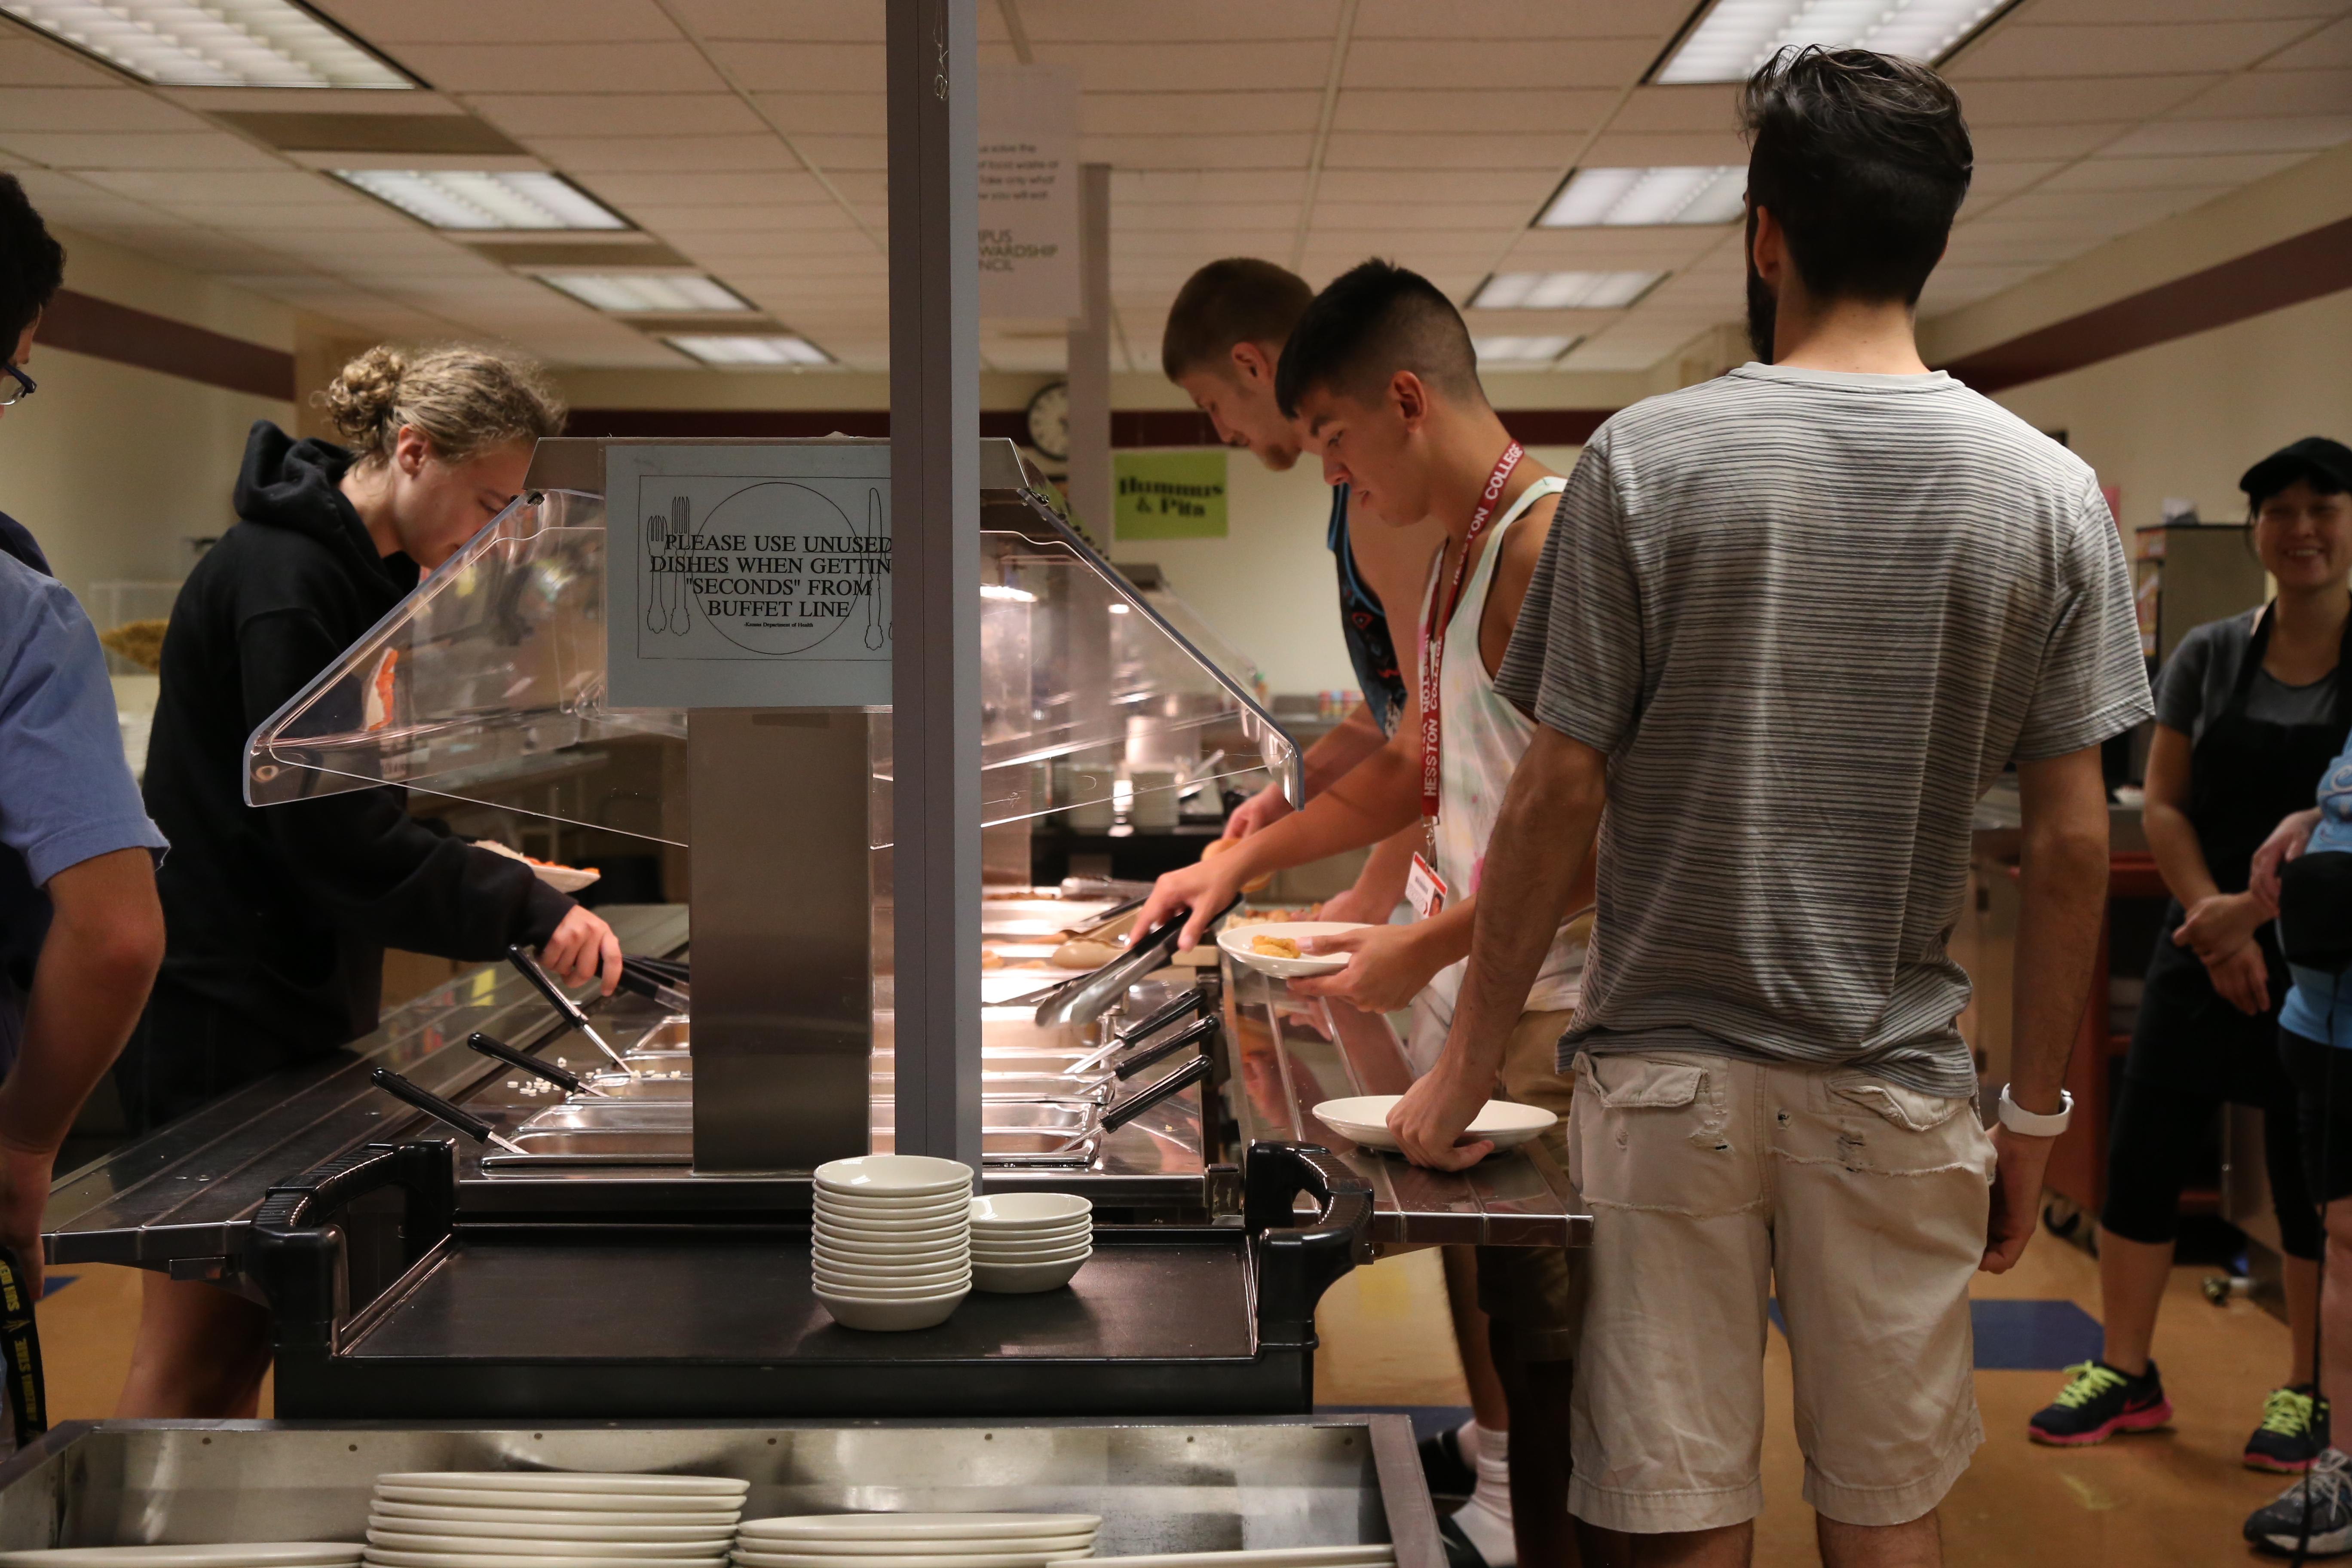 Students go through the cafeteria line. Many students hurry through the line, not considering how to use the cafeteria food to their benefit. Photo by